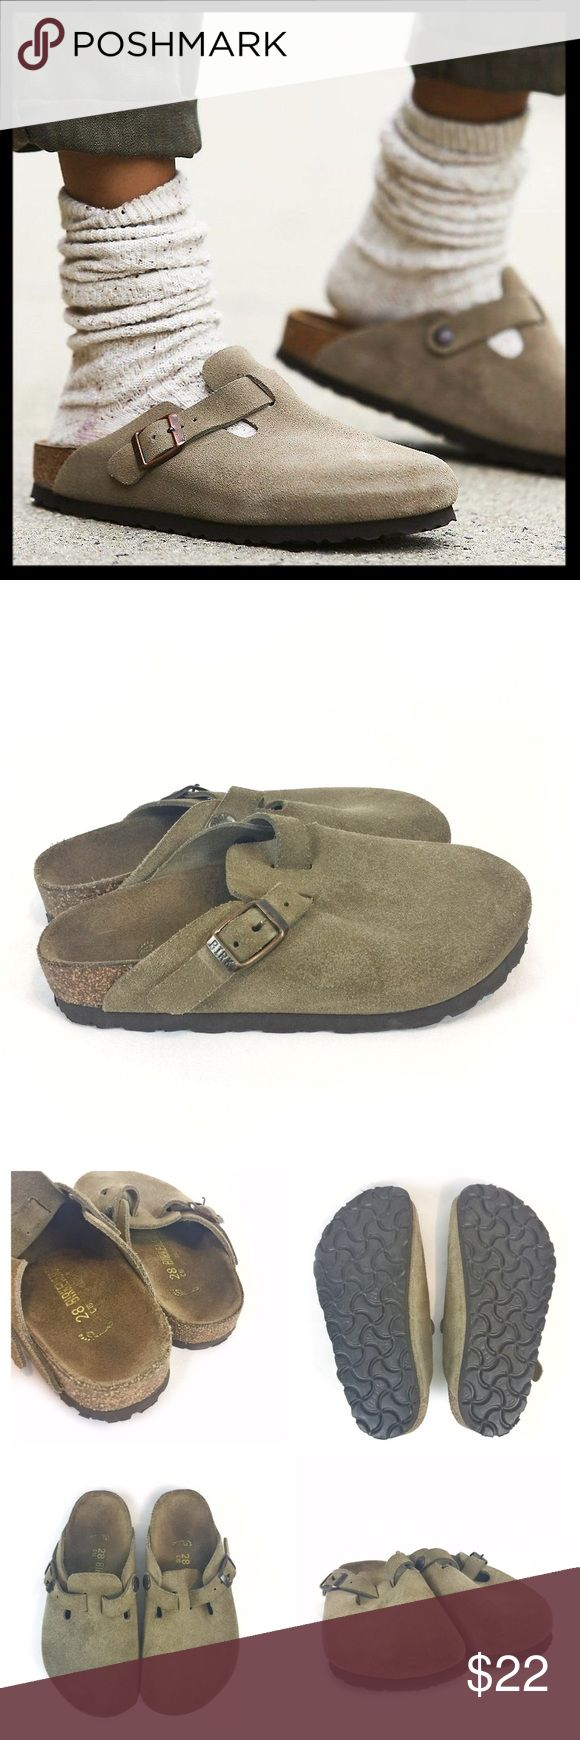 birkenstock // boston suede child's clogs • tan Classic Birks in miniature! Outfit your kiddo with one of the best brands in footwear. These well known German made suede clogs are comfortable and durable. Worn but no major flaws. Color is beige. Size is Euro 28, which according to the Birkenstock size chart fits like a US 11 (toddler's). They are unisex. Birkenstock Shoes